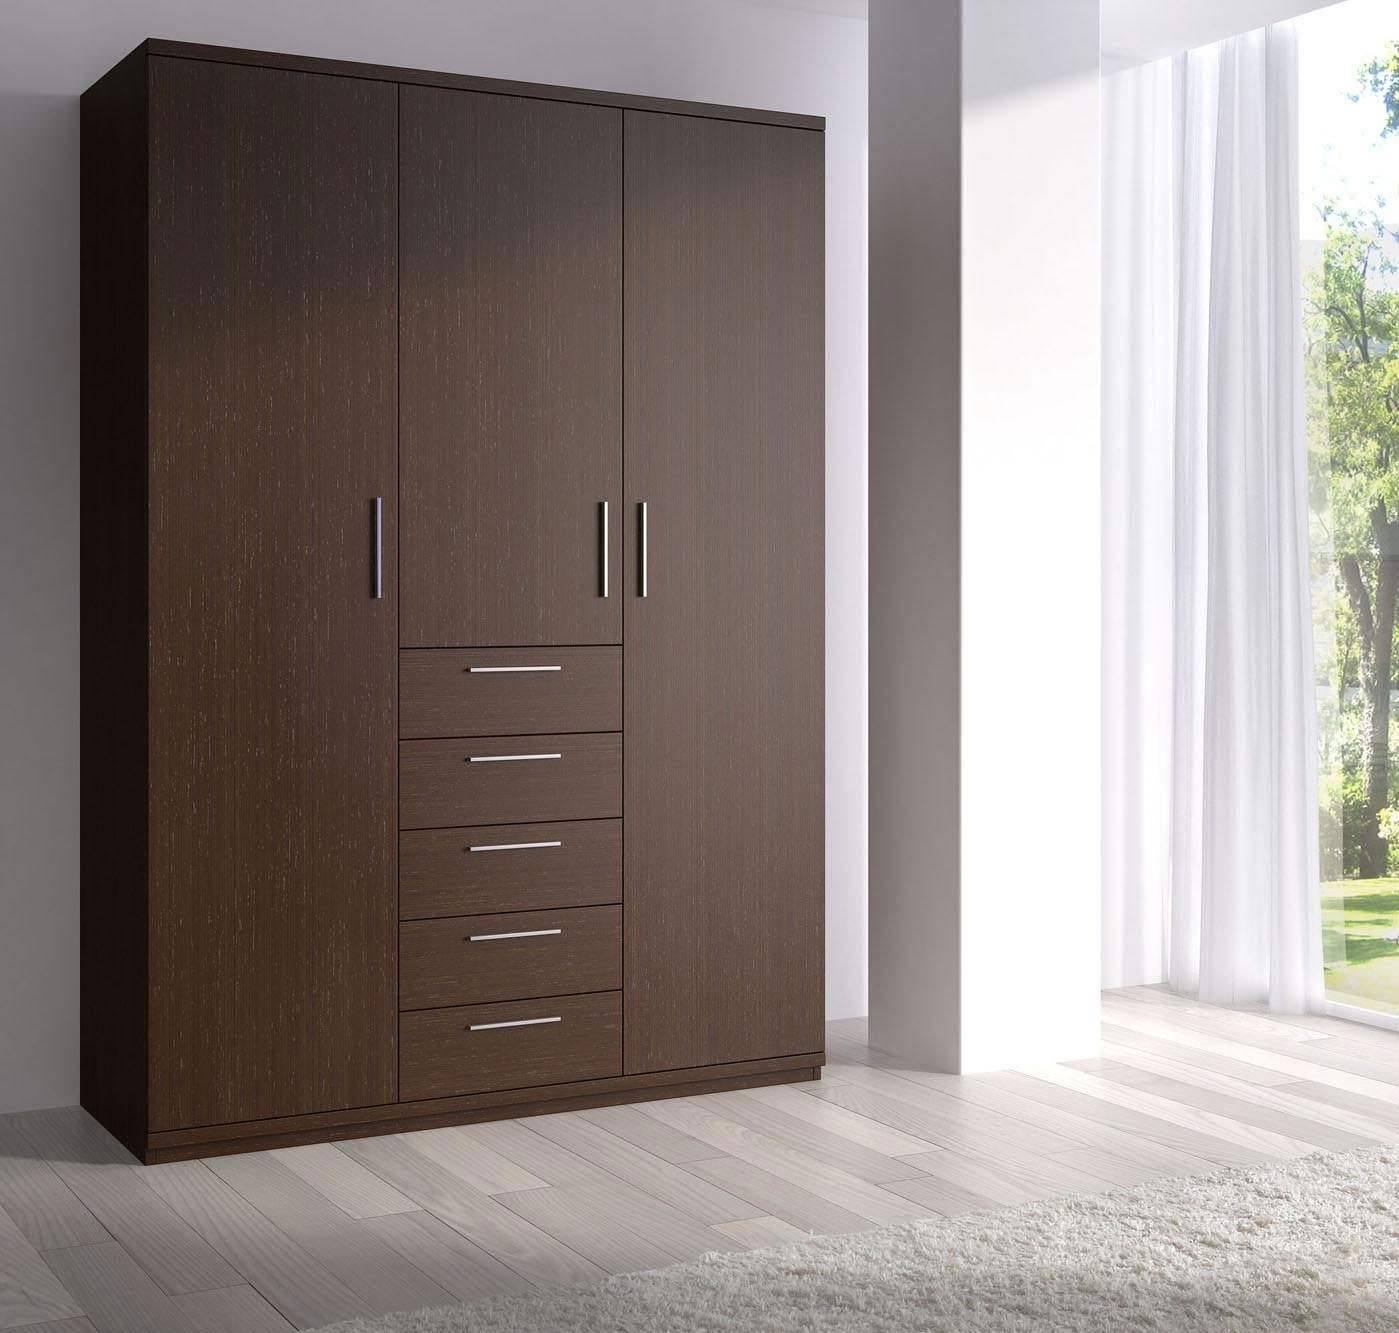 Bedroom Classy Wooden Closet Wardrobe Ideas With Modern Design Regarding Dark Wardrobes (Image 4 of 15)